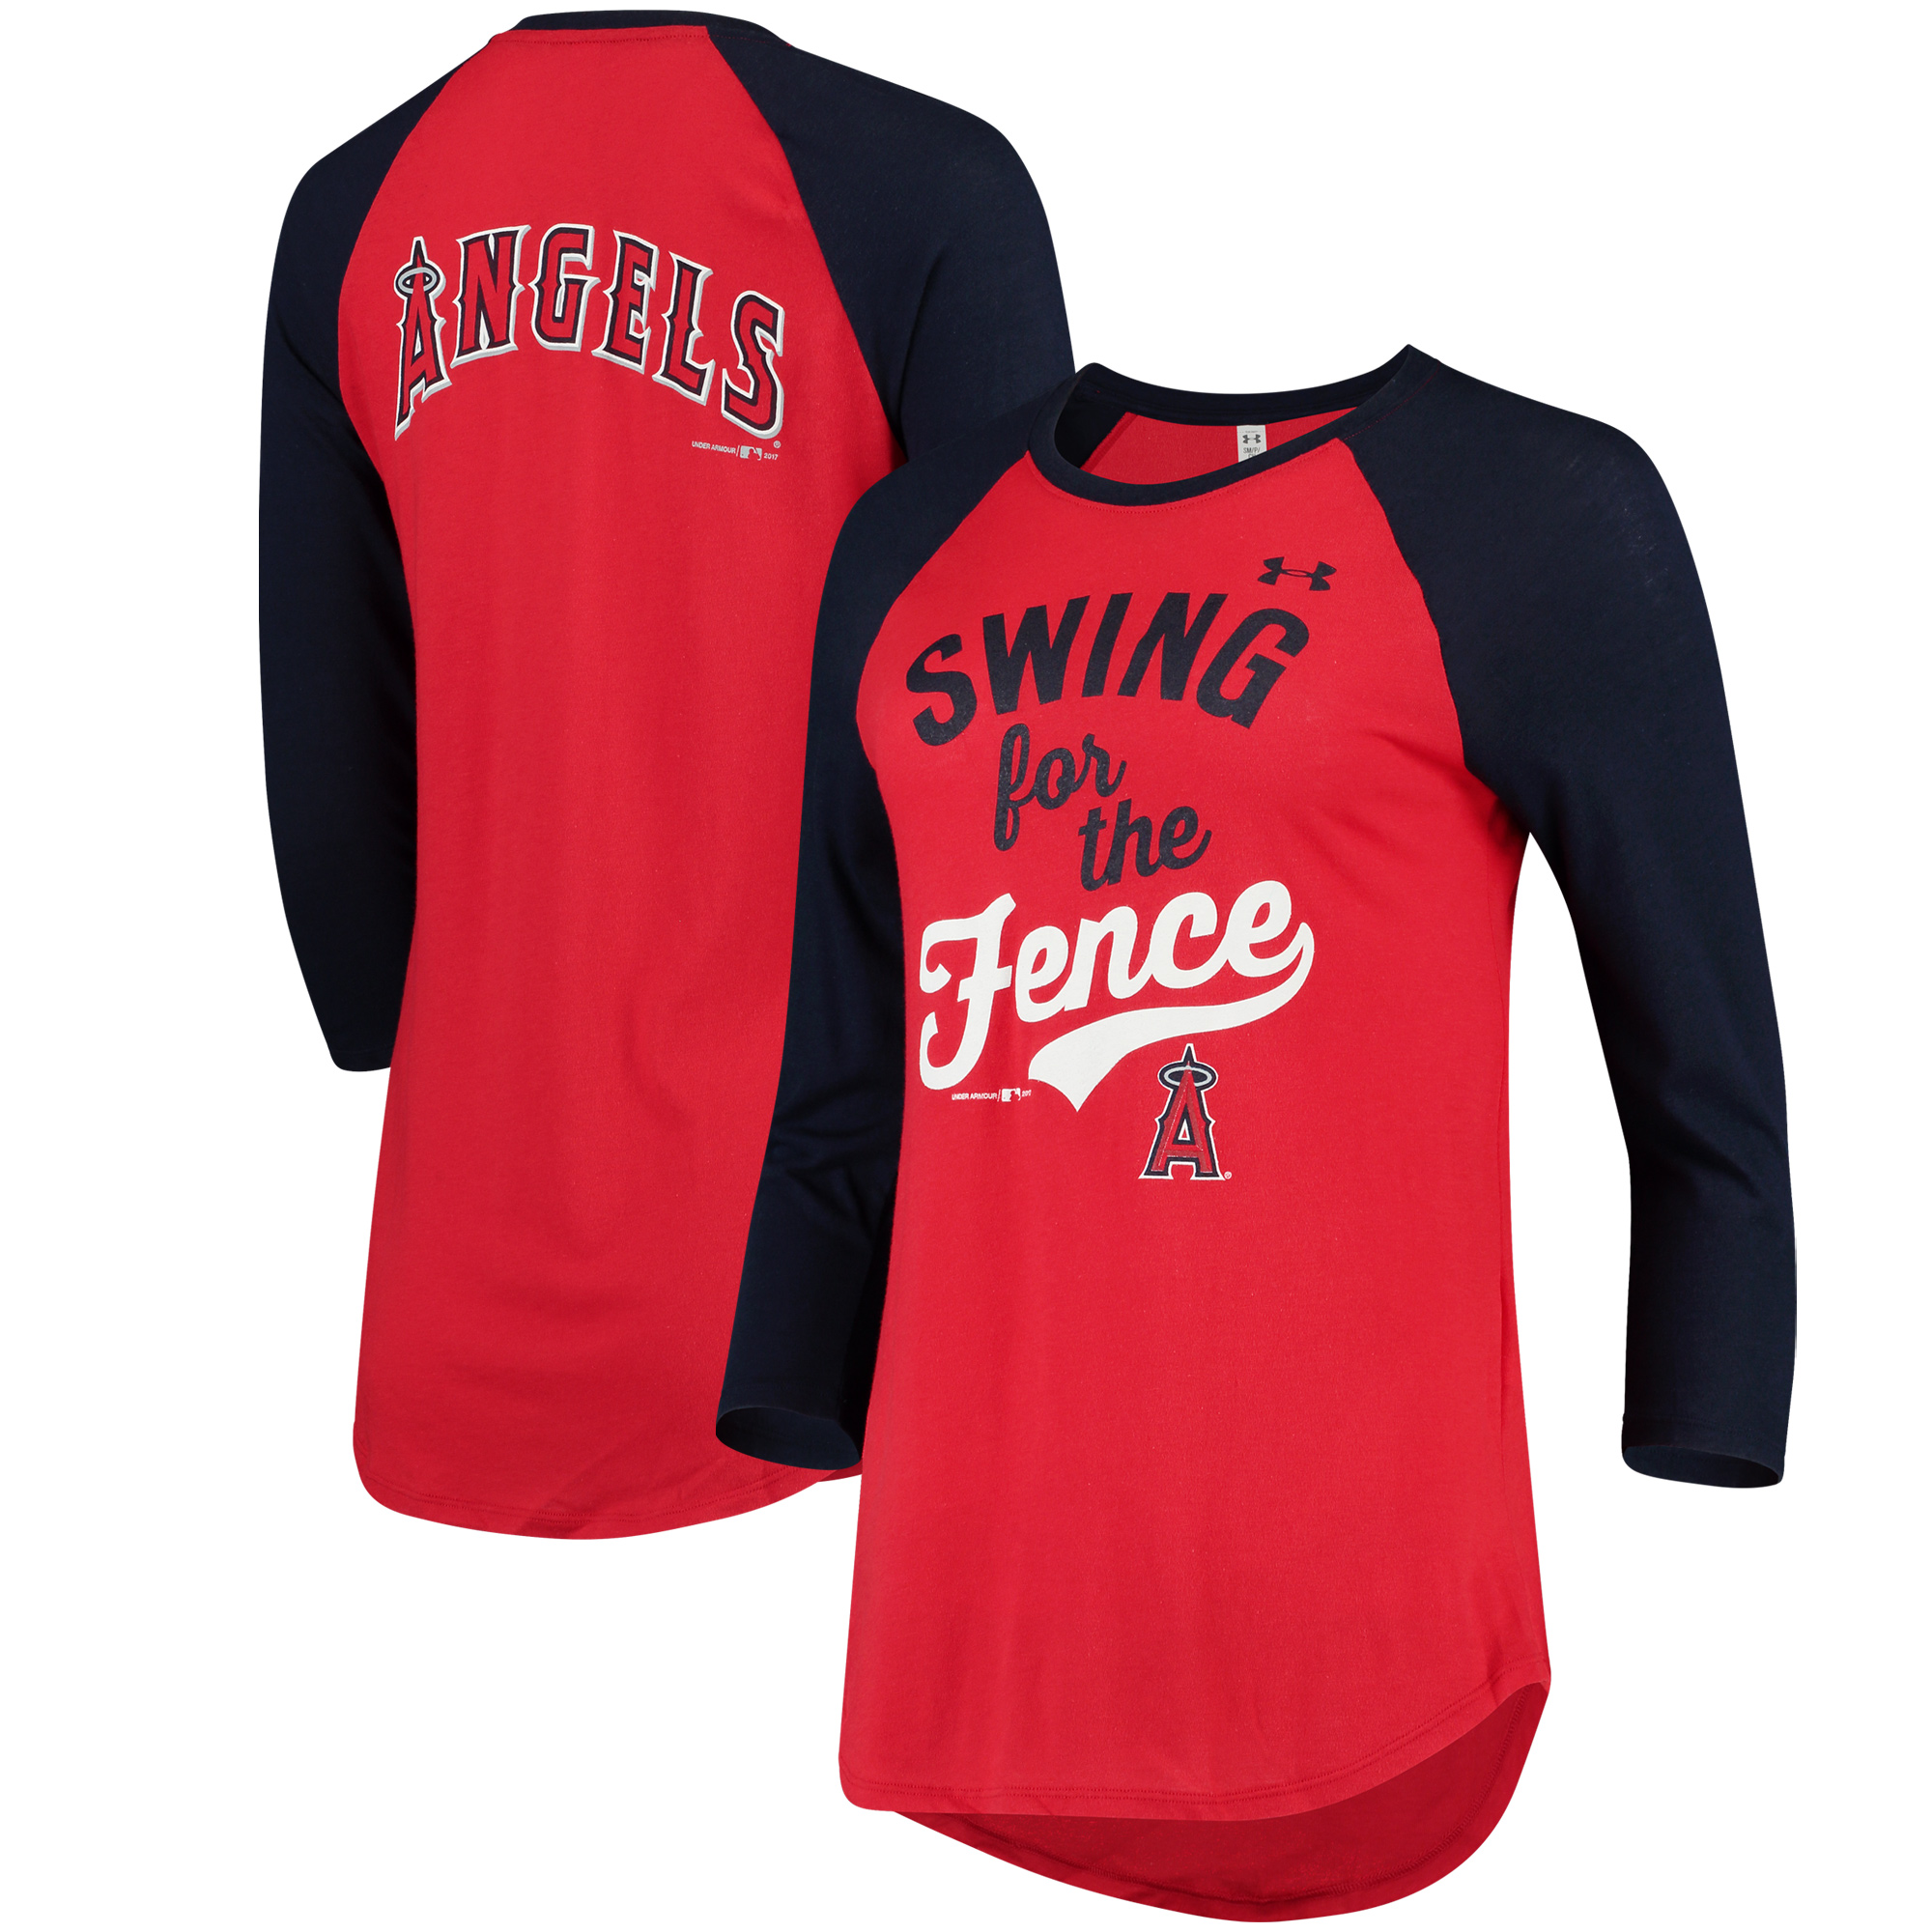 Los Angeles Angels Under Armour Women's Baseball 3/4-Sleeve Performance T-Shirt - Red/Navy